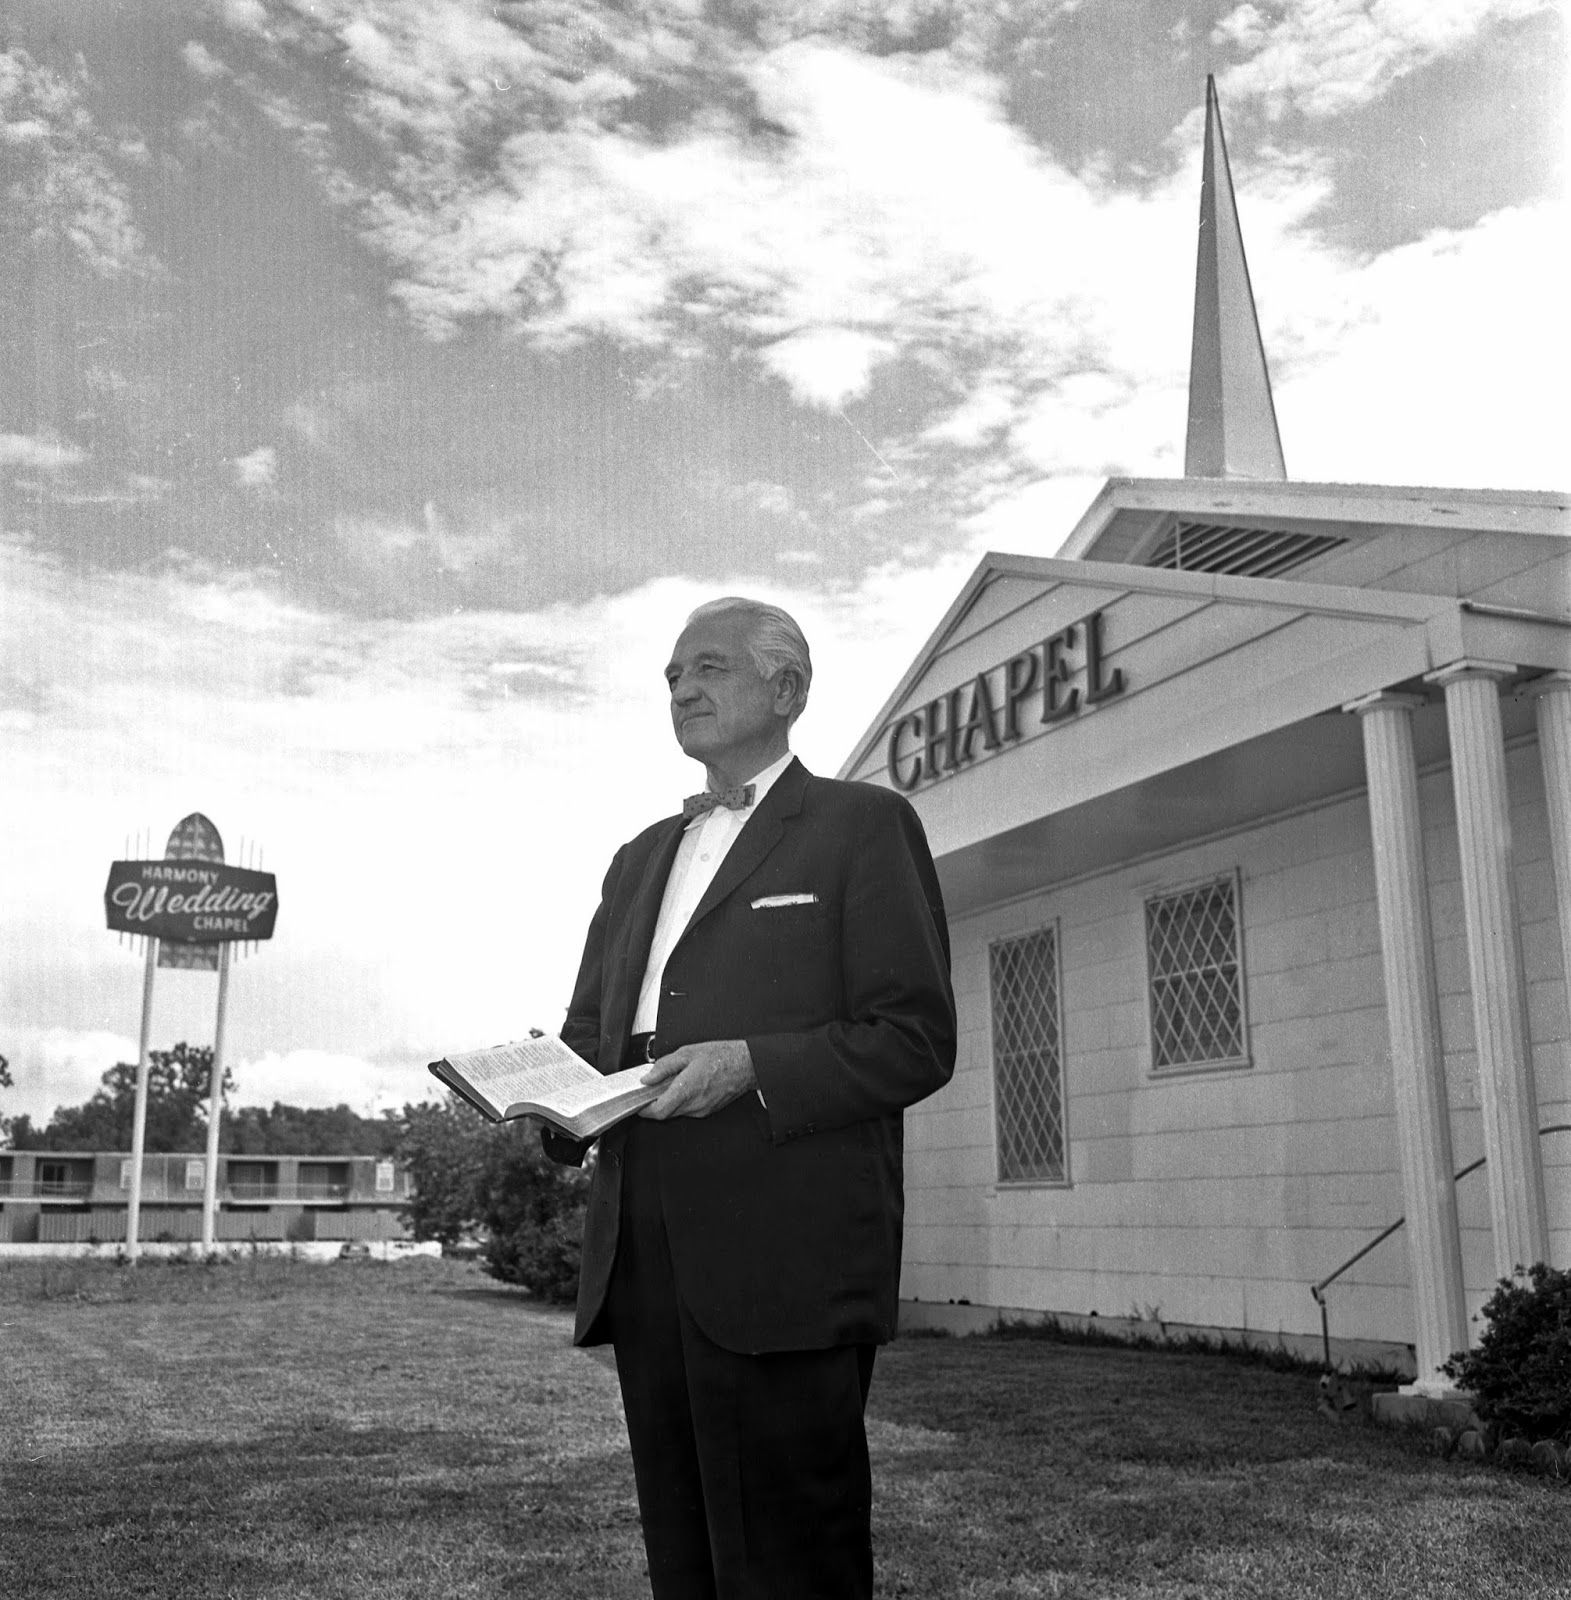 8 4 65 Maurice Turner Chaplain Harmony Wedding Chapel